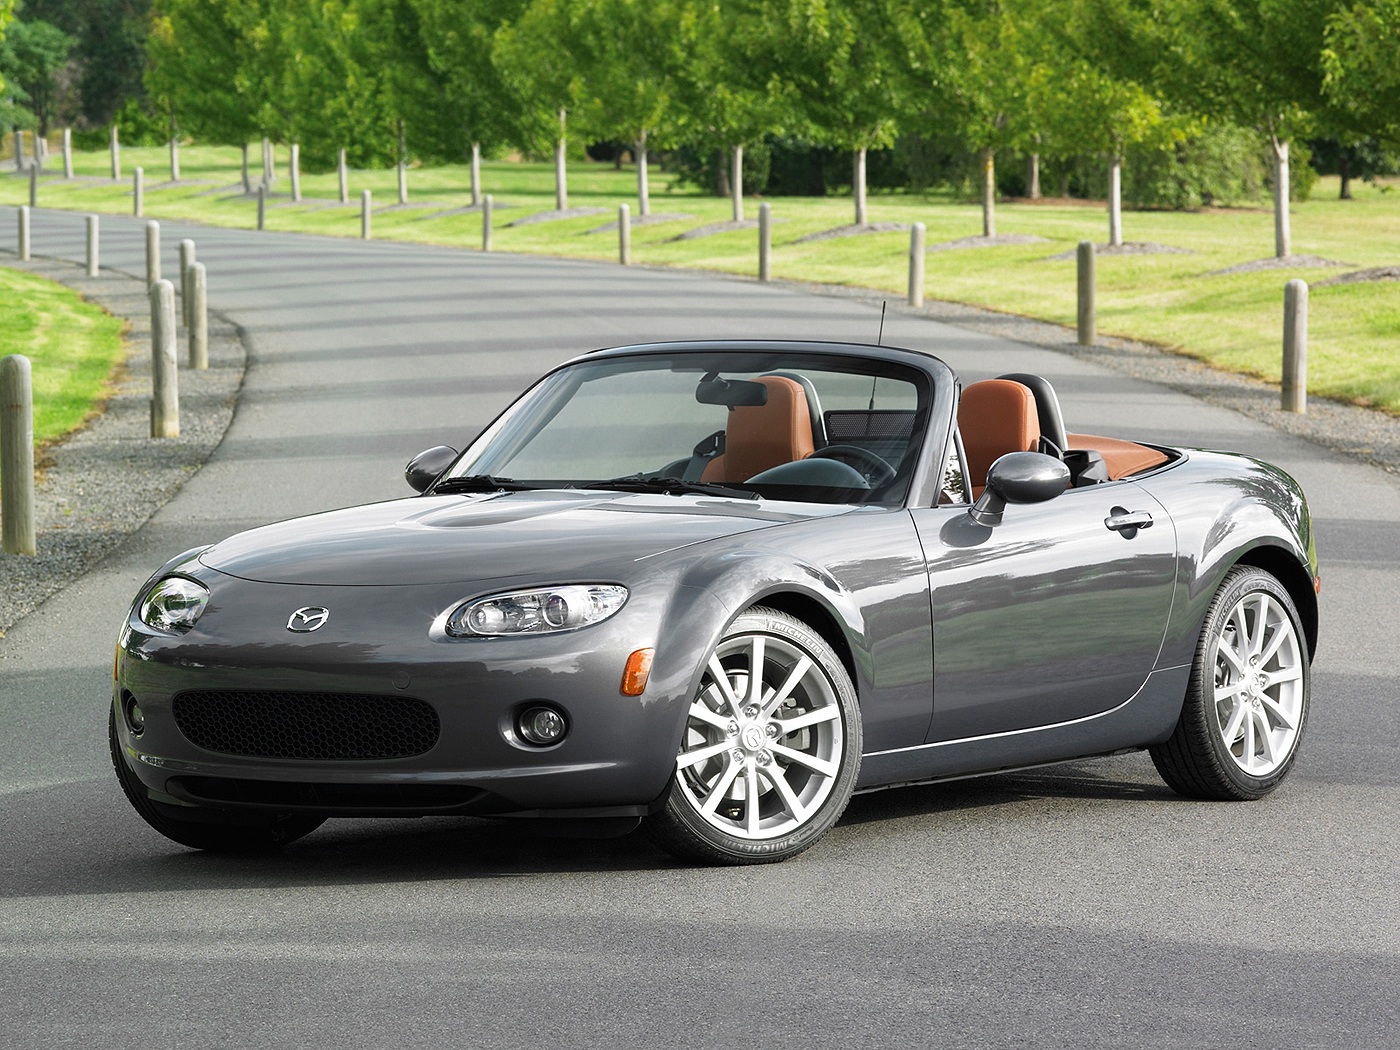 mazda mx 5 named future classic aa cars. Black Bedroom Furniture Sets. Home Design Ideas